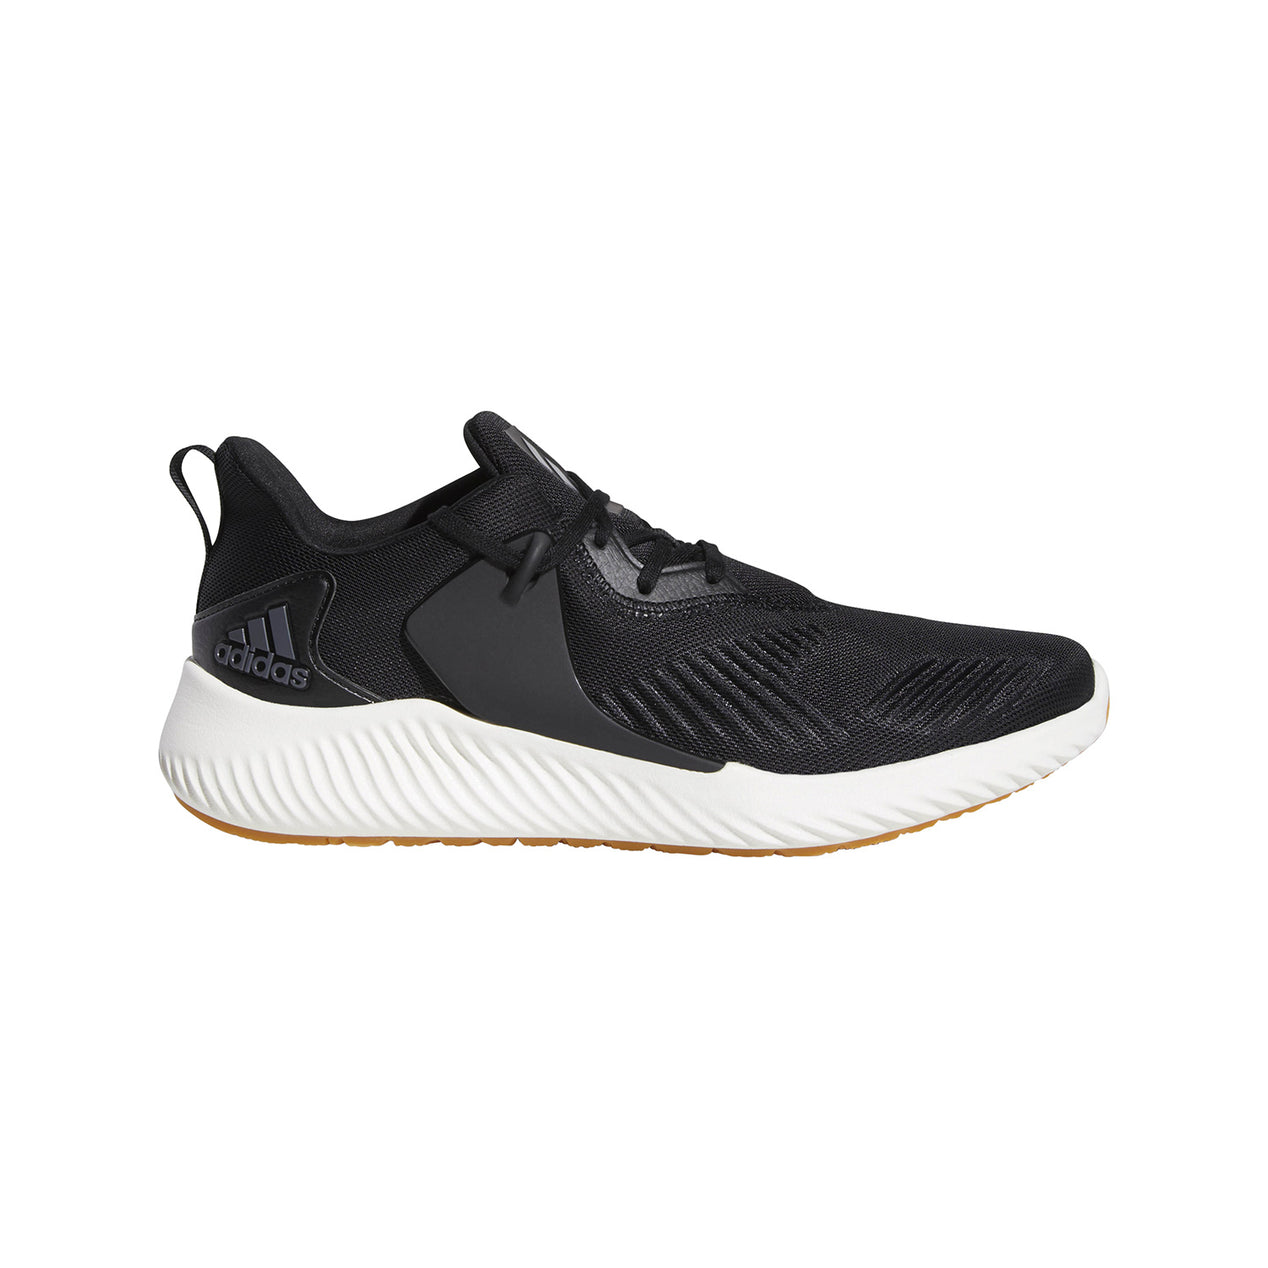 9d14f91ad0984 Adidas Alphabounce Rc 2 Training Shoes - Men s